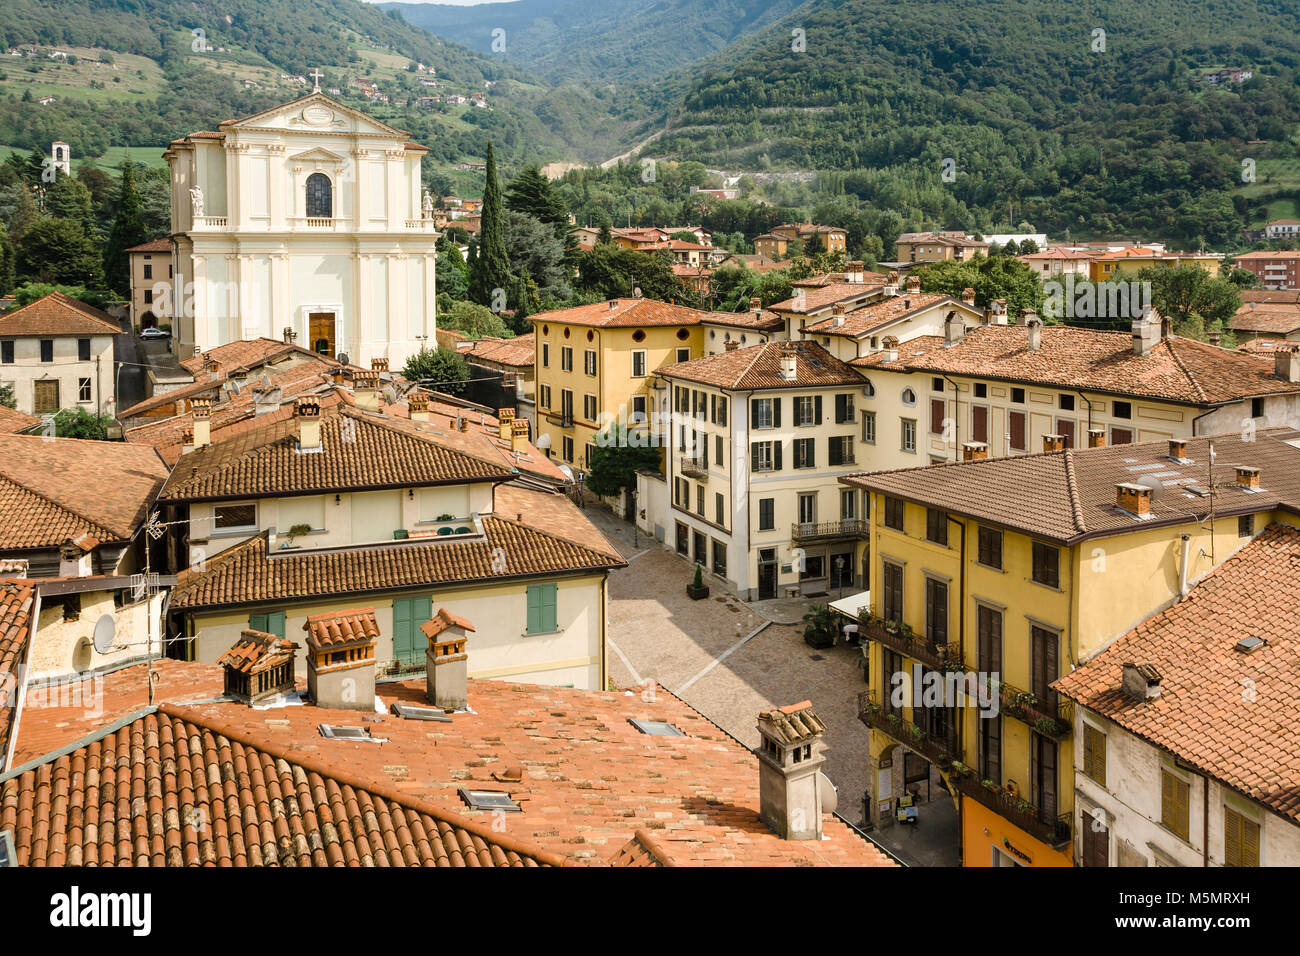 View over rooftops of Pisogne, a small town on the shore of Lake Iseo in the Brescia region of Northern Italy. - Stock Image